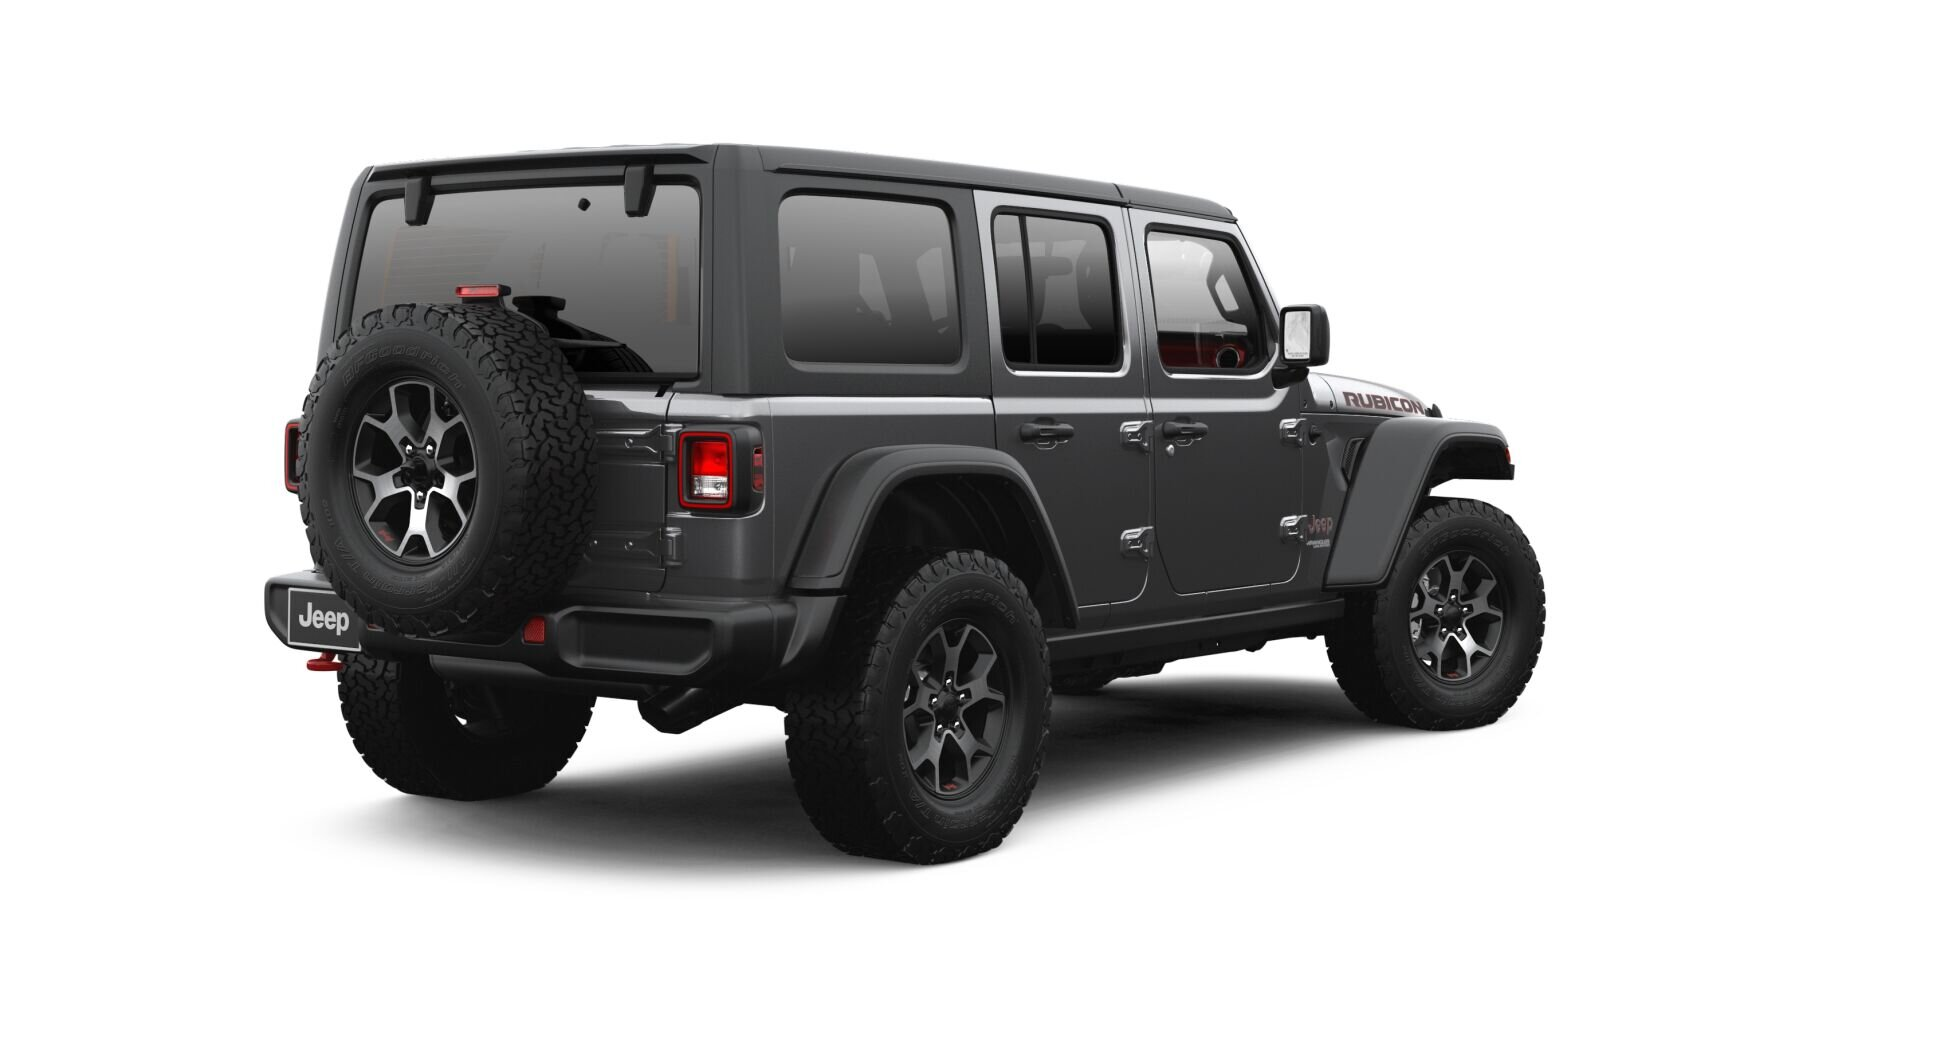 2021 Jeep Wrangler Rubicon Back View - Image Courtesy of Jeep Chrysler